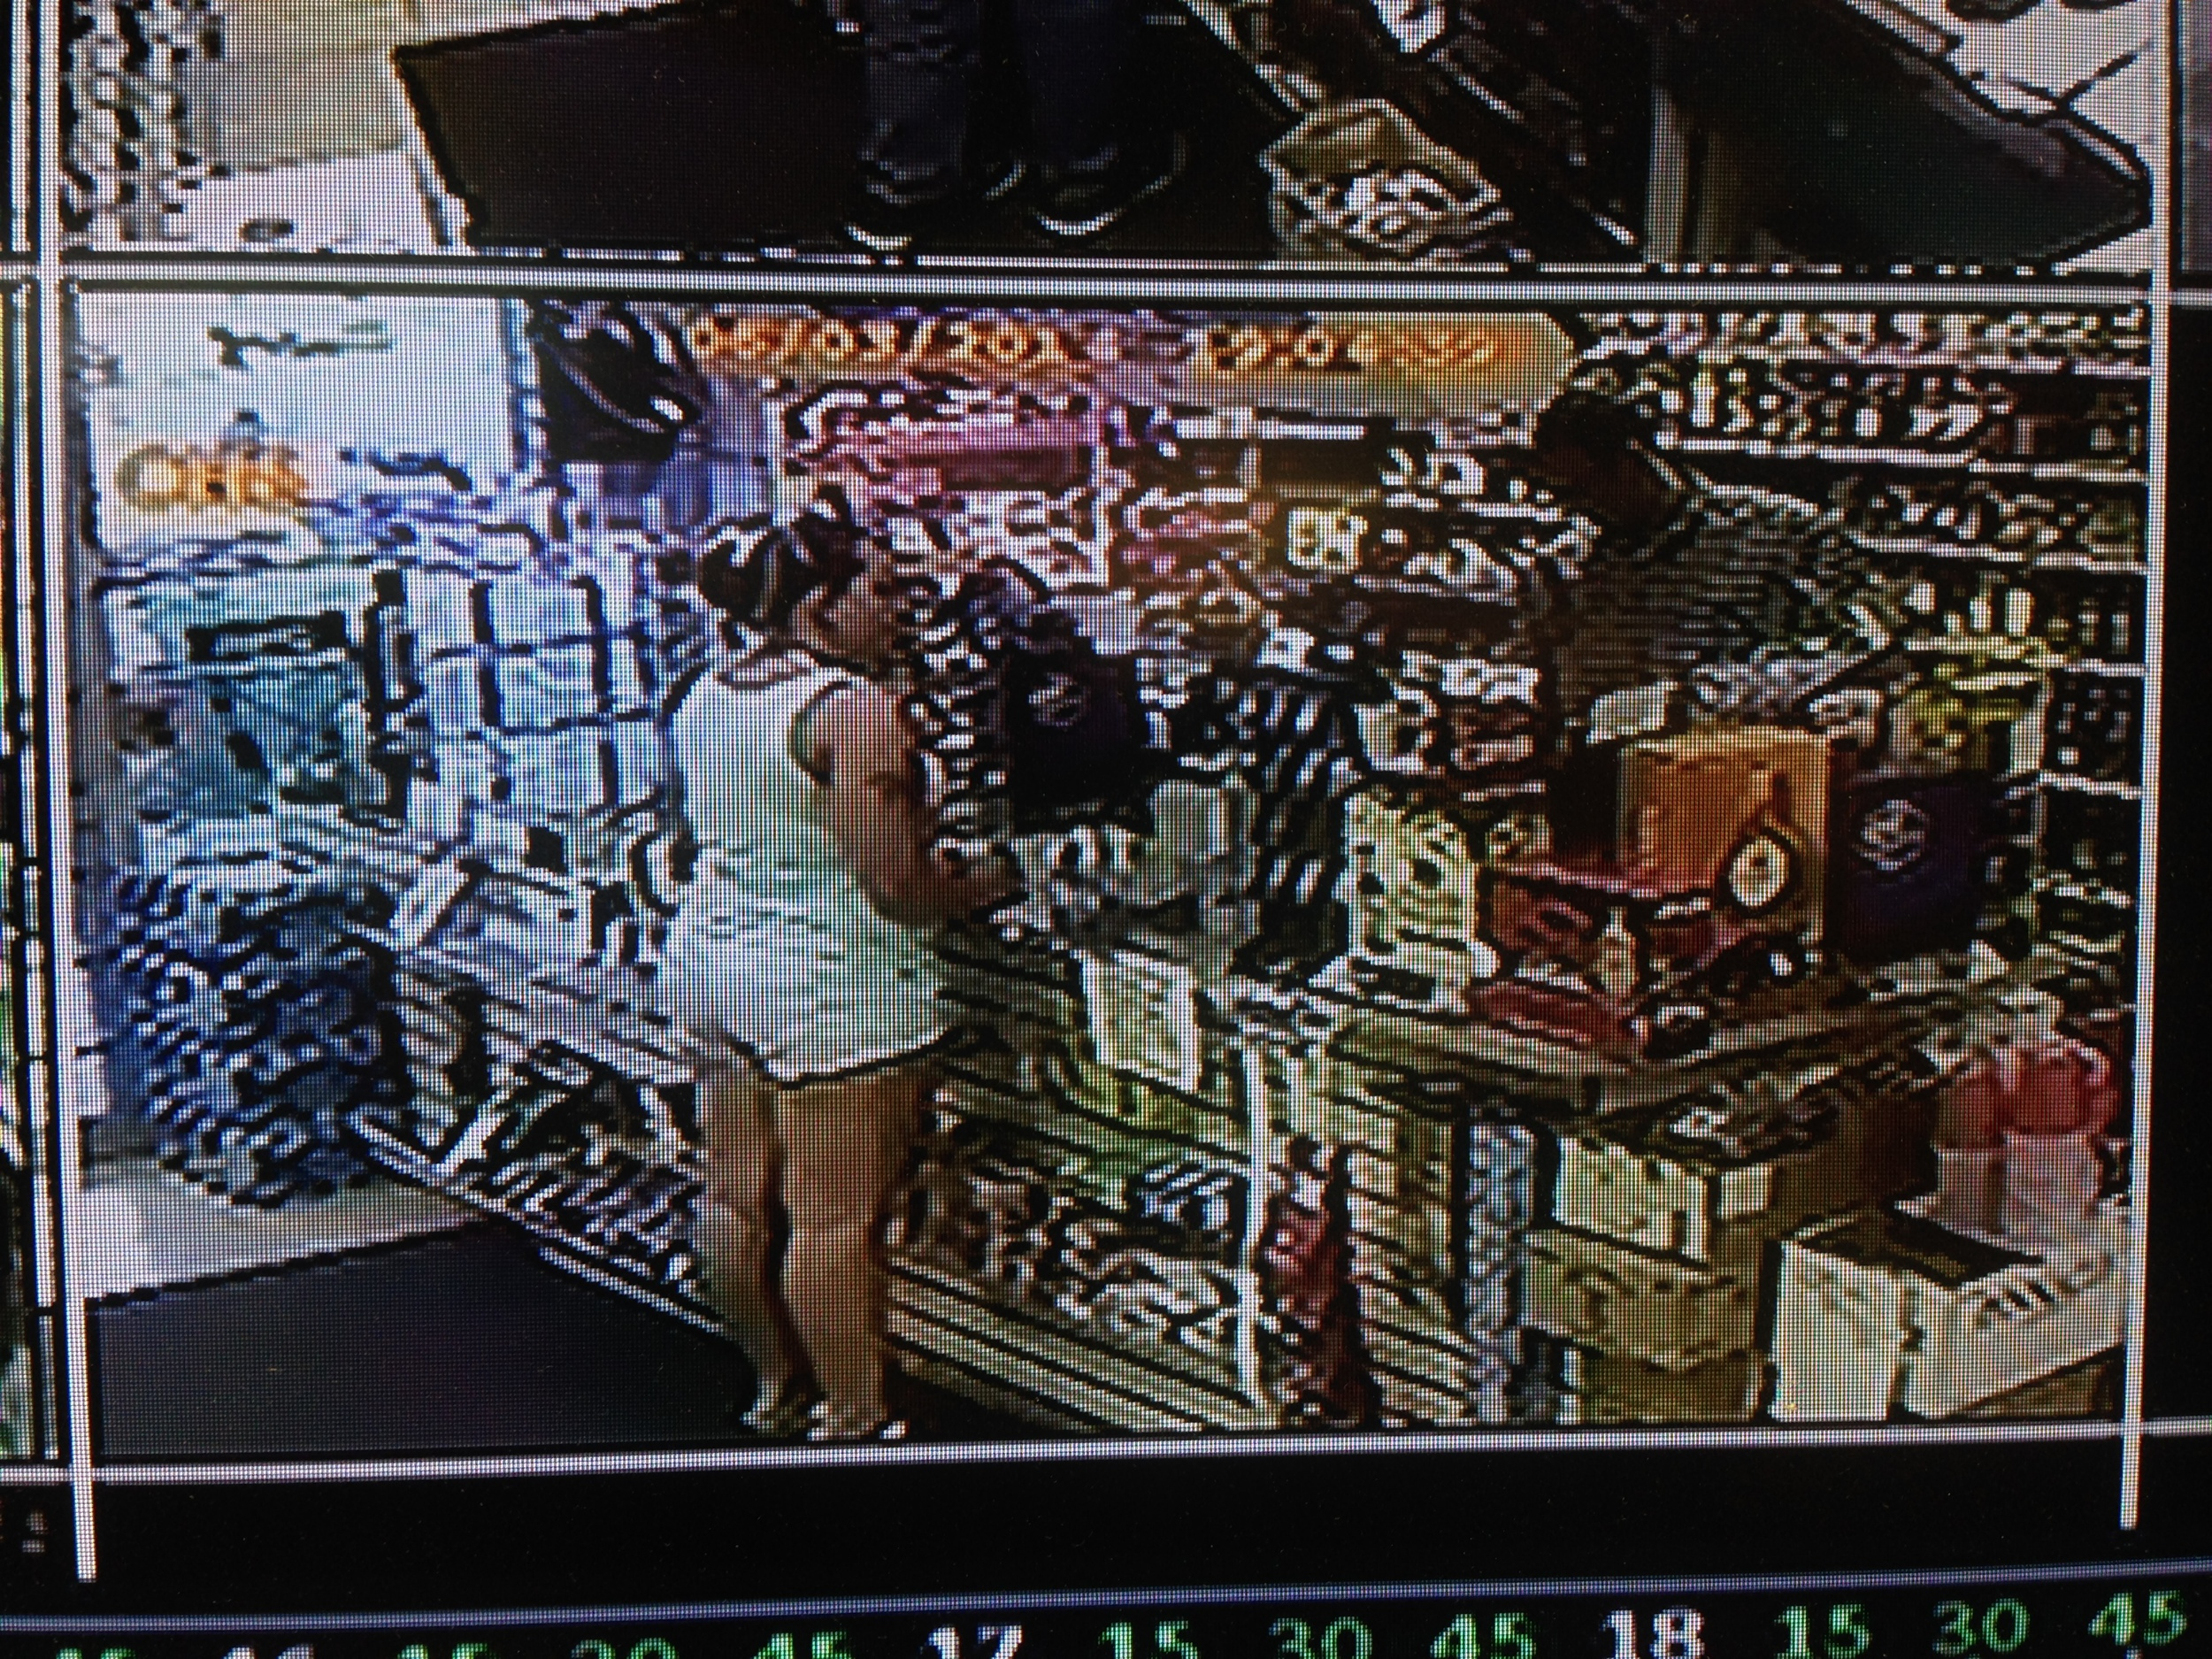 PHOTO: Stills taken from the liquor store surveillance camera show a W/F, late 30's to early 40's, with dark hair, wearing white shorts and a white tank top. She appears to have a tattoo on her right arm, below her shoulder. (Photo Courtesy of Cape Coral Police Department)